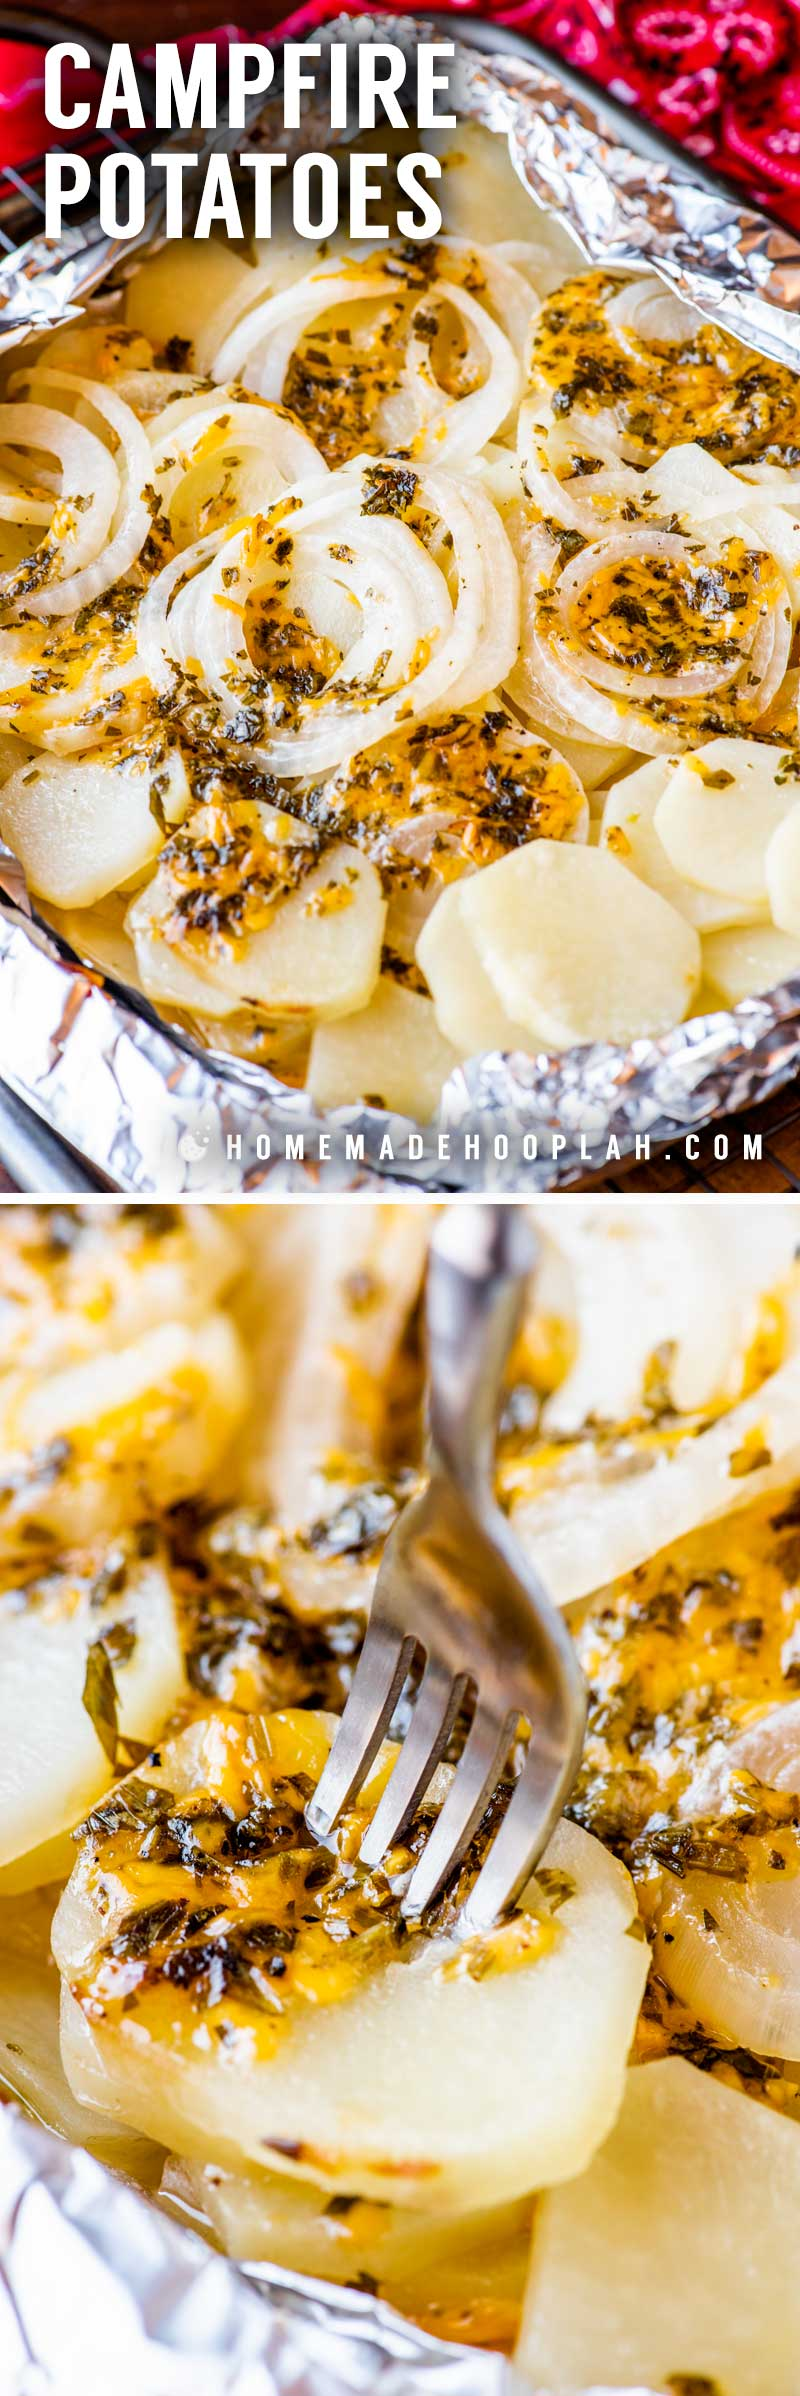 Campfire Potatoes! Whether you're out in the woods or just want the rustic feel at home, these campfire potatoes are a classic summertime side dish that pairs great with all types of meat. Includes instructions for grilling, roasting, or baking. | HomemadeHooplah.com